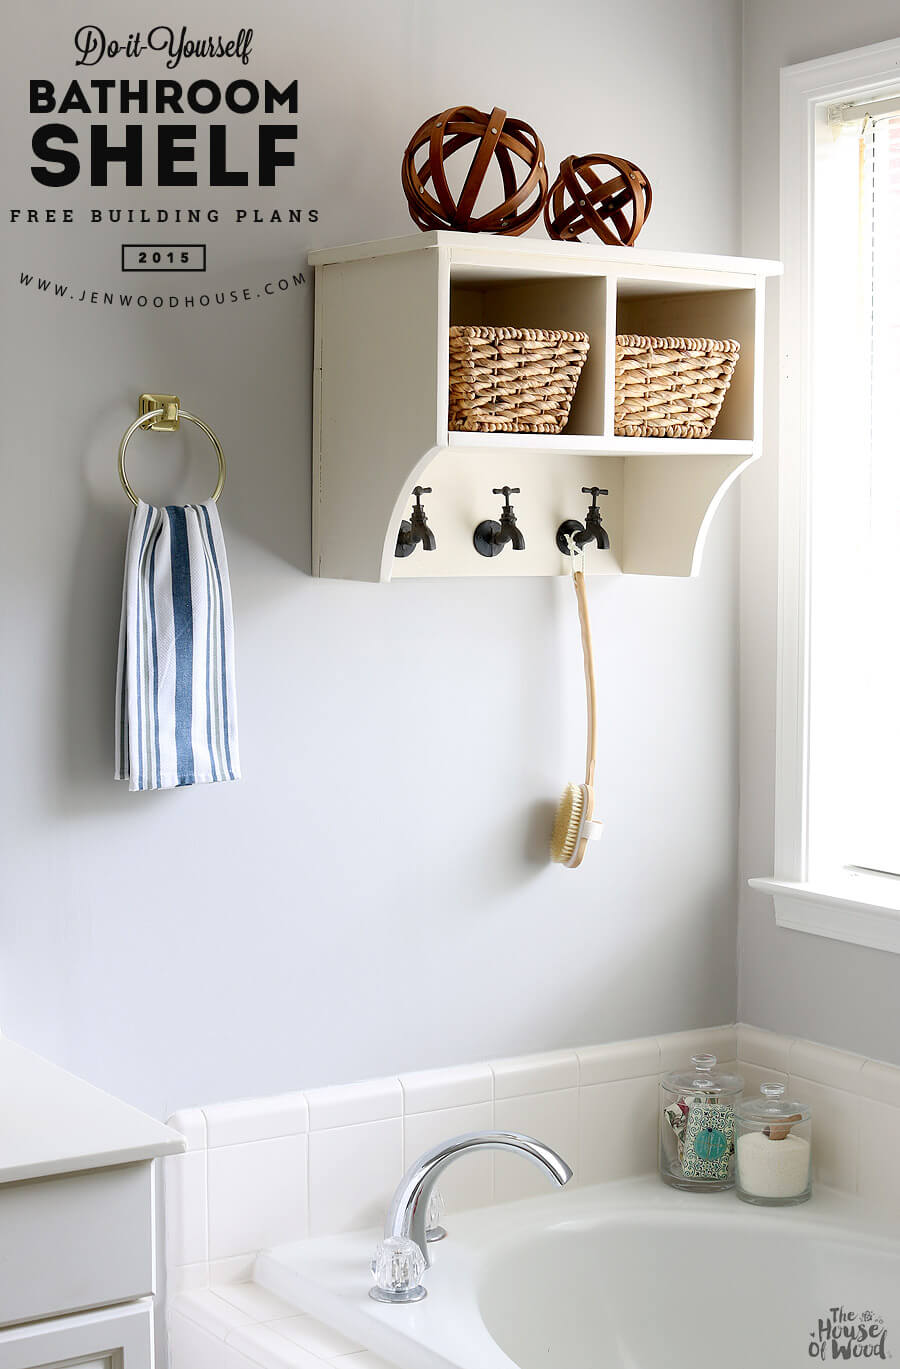 Wonderful  Space Bathroom Storage Ideas  DIY Network Blog Made  Remade  DIY